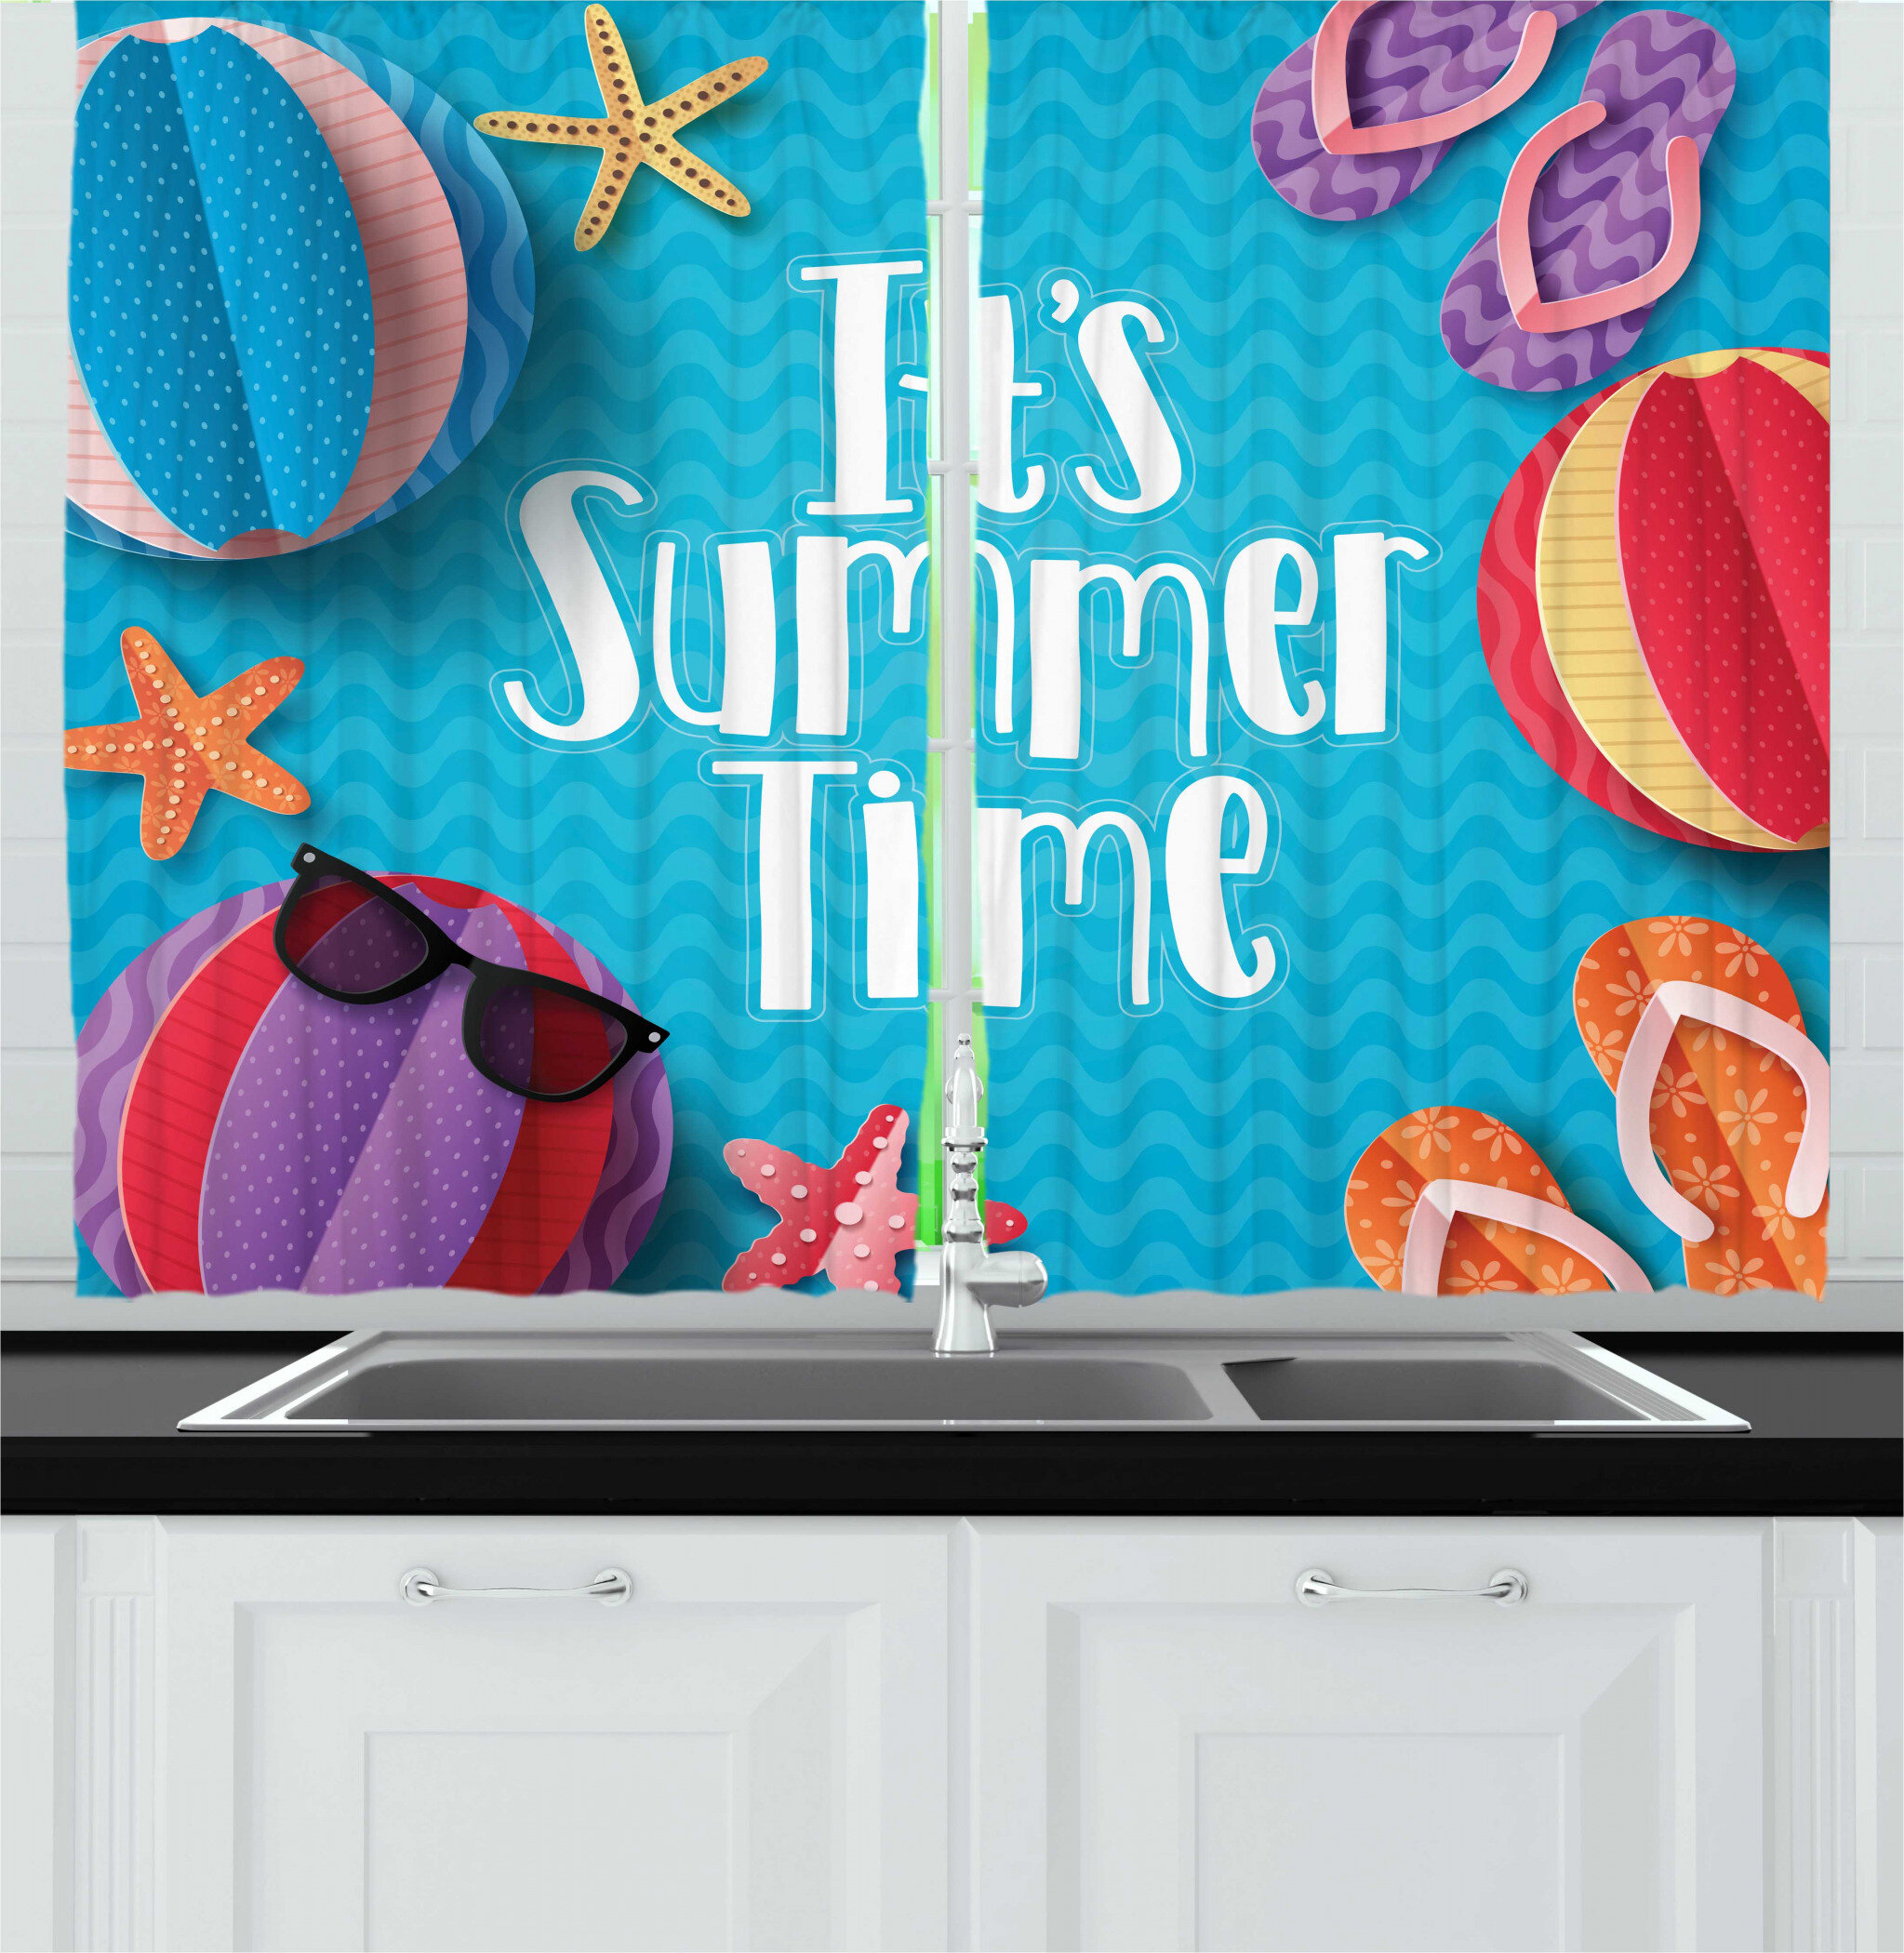 East Urban Home 2 Piece Its Summer Time Lettering With Beach Fun Sunglasses Starfish Balls Flip Flops Pool Party Kitchen Curtain Set Wayfair